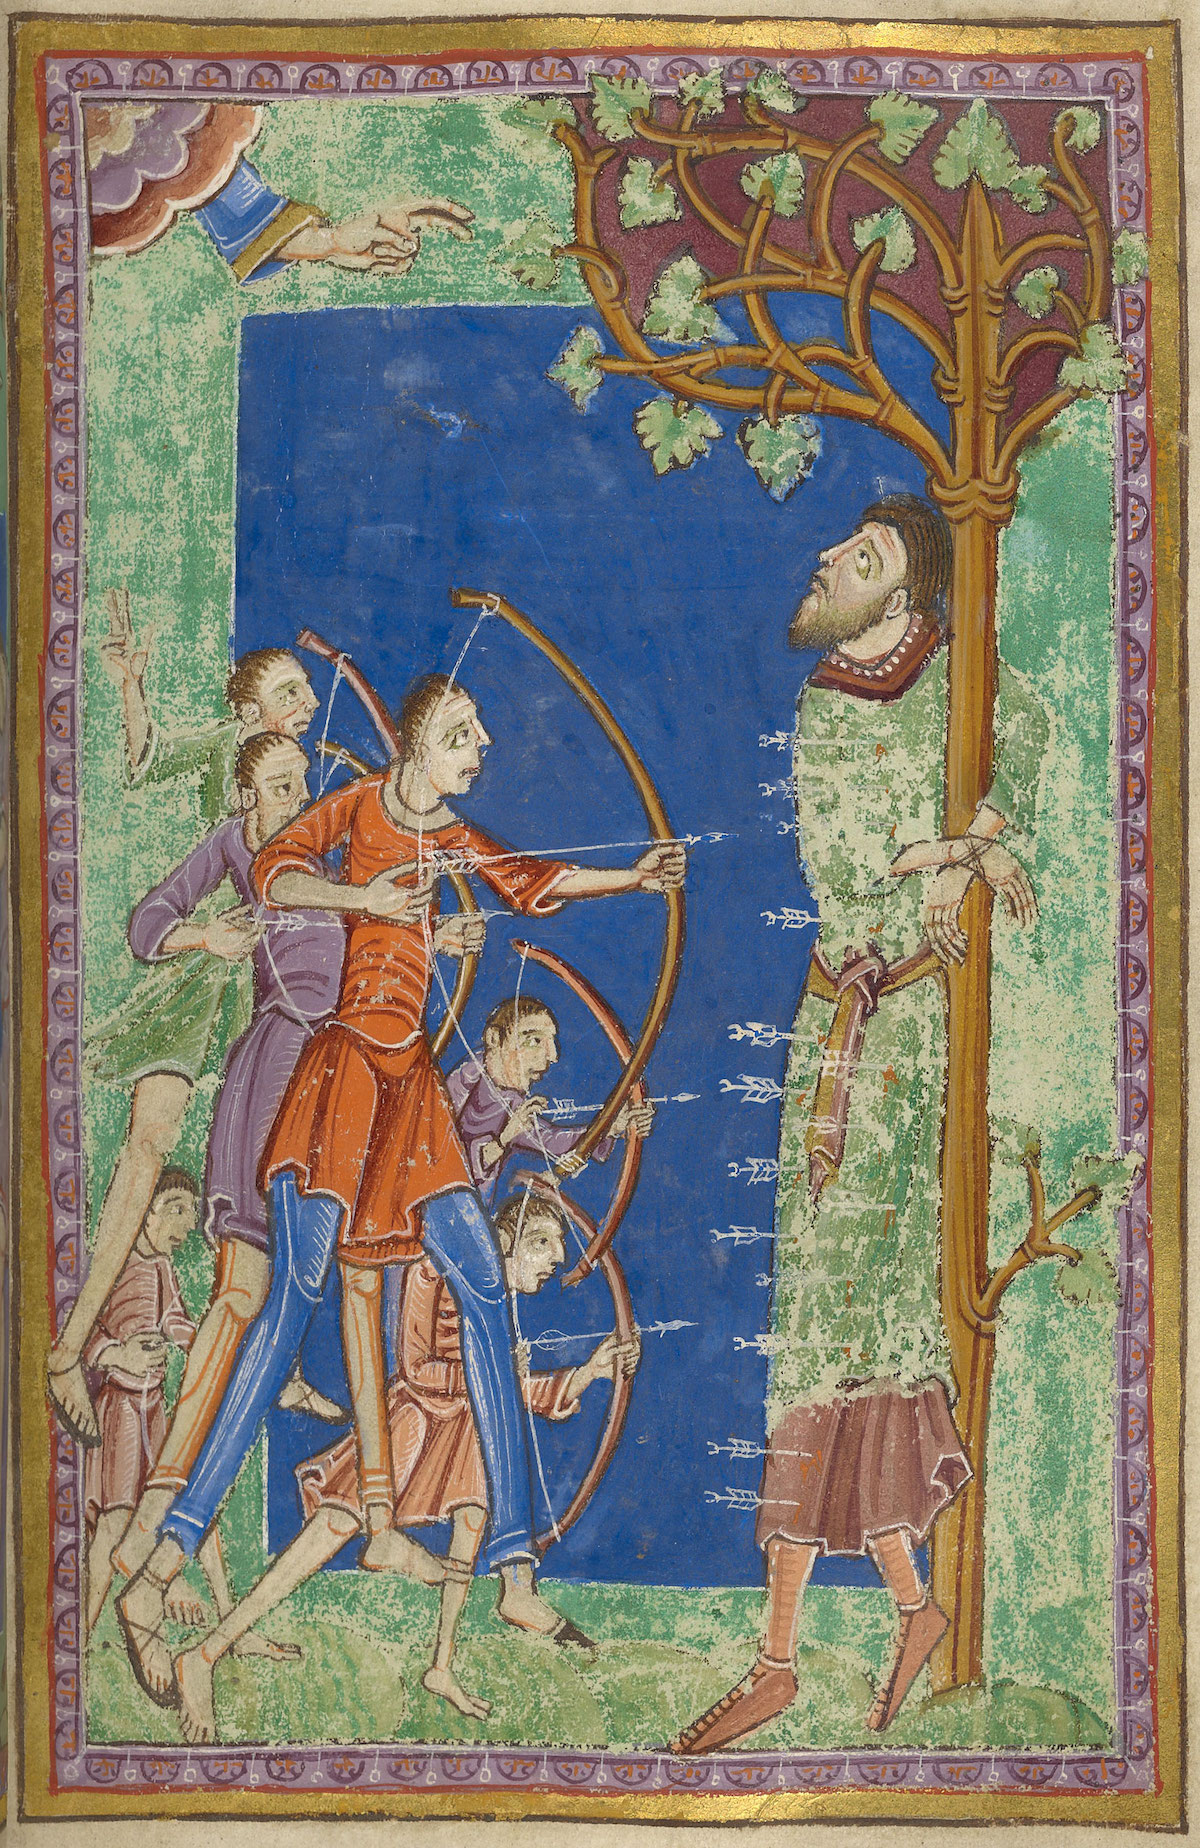 The martyrdom of St. Edmund at the hands of Vikings